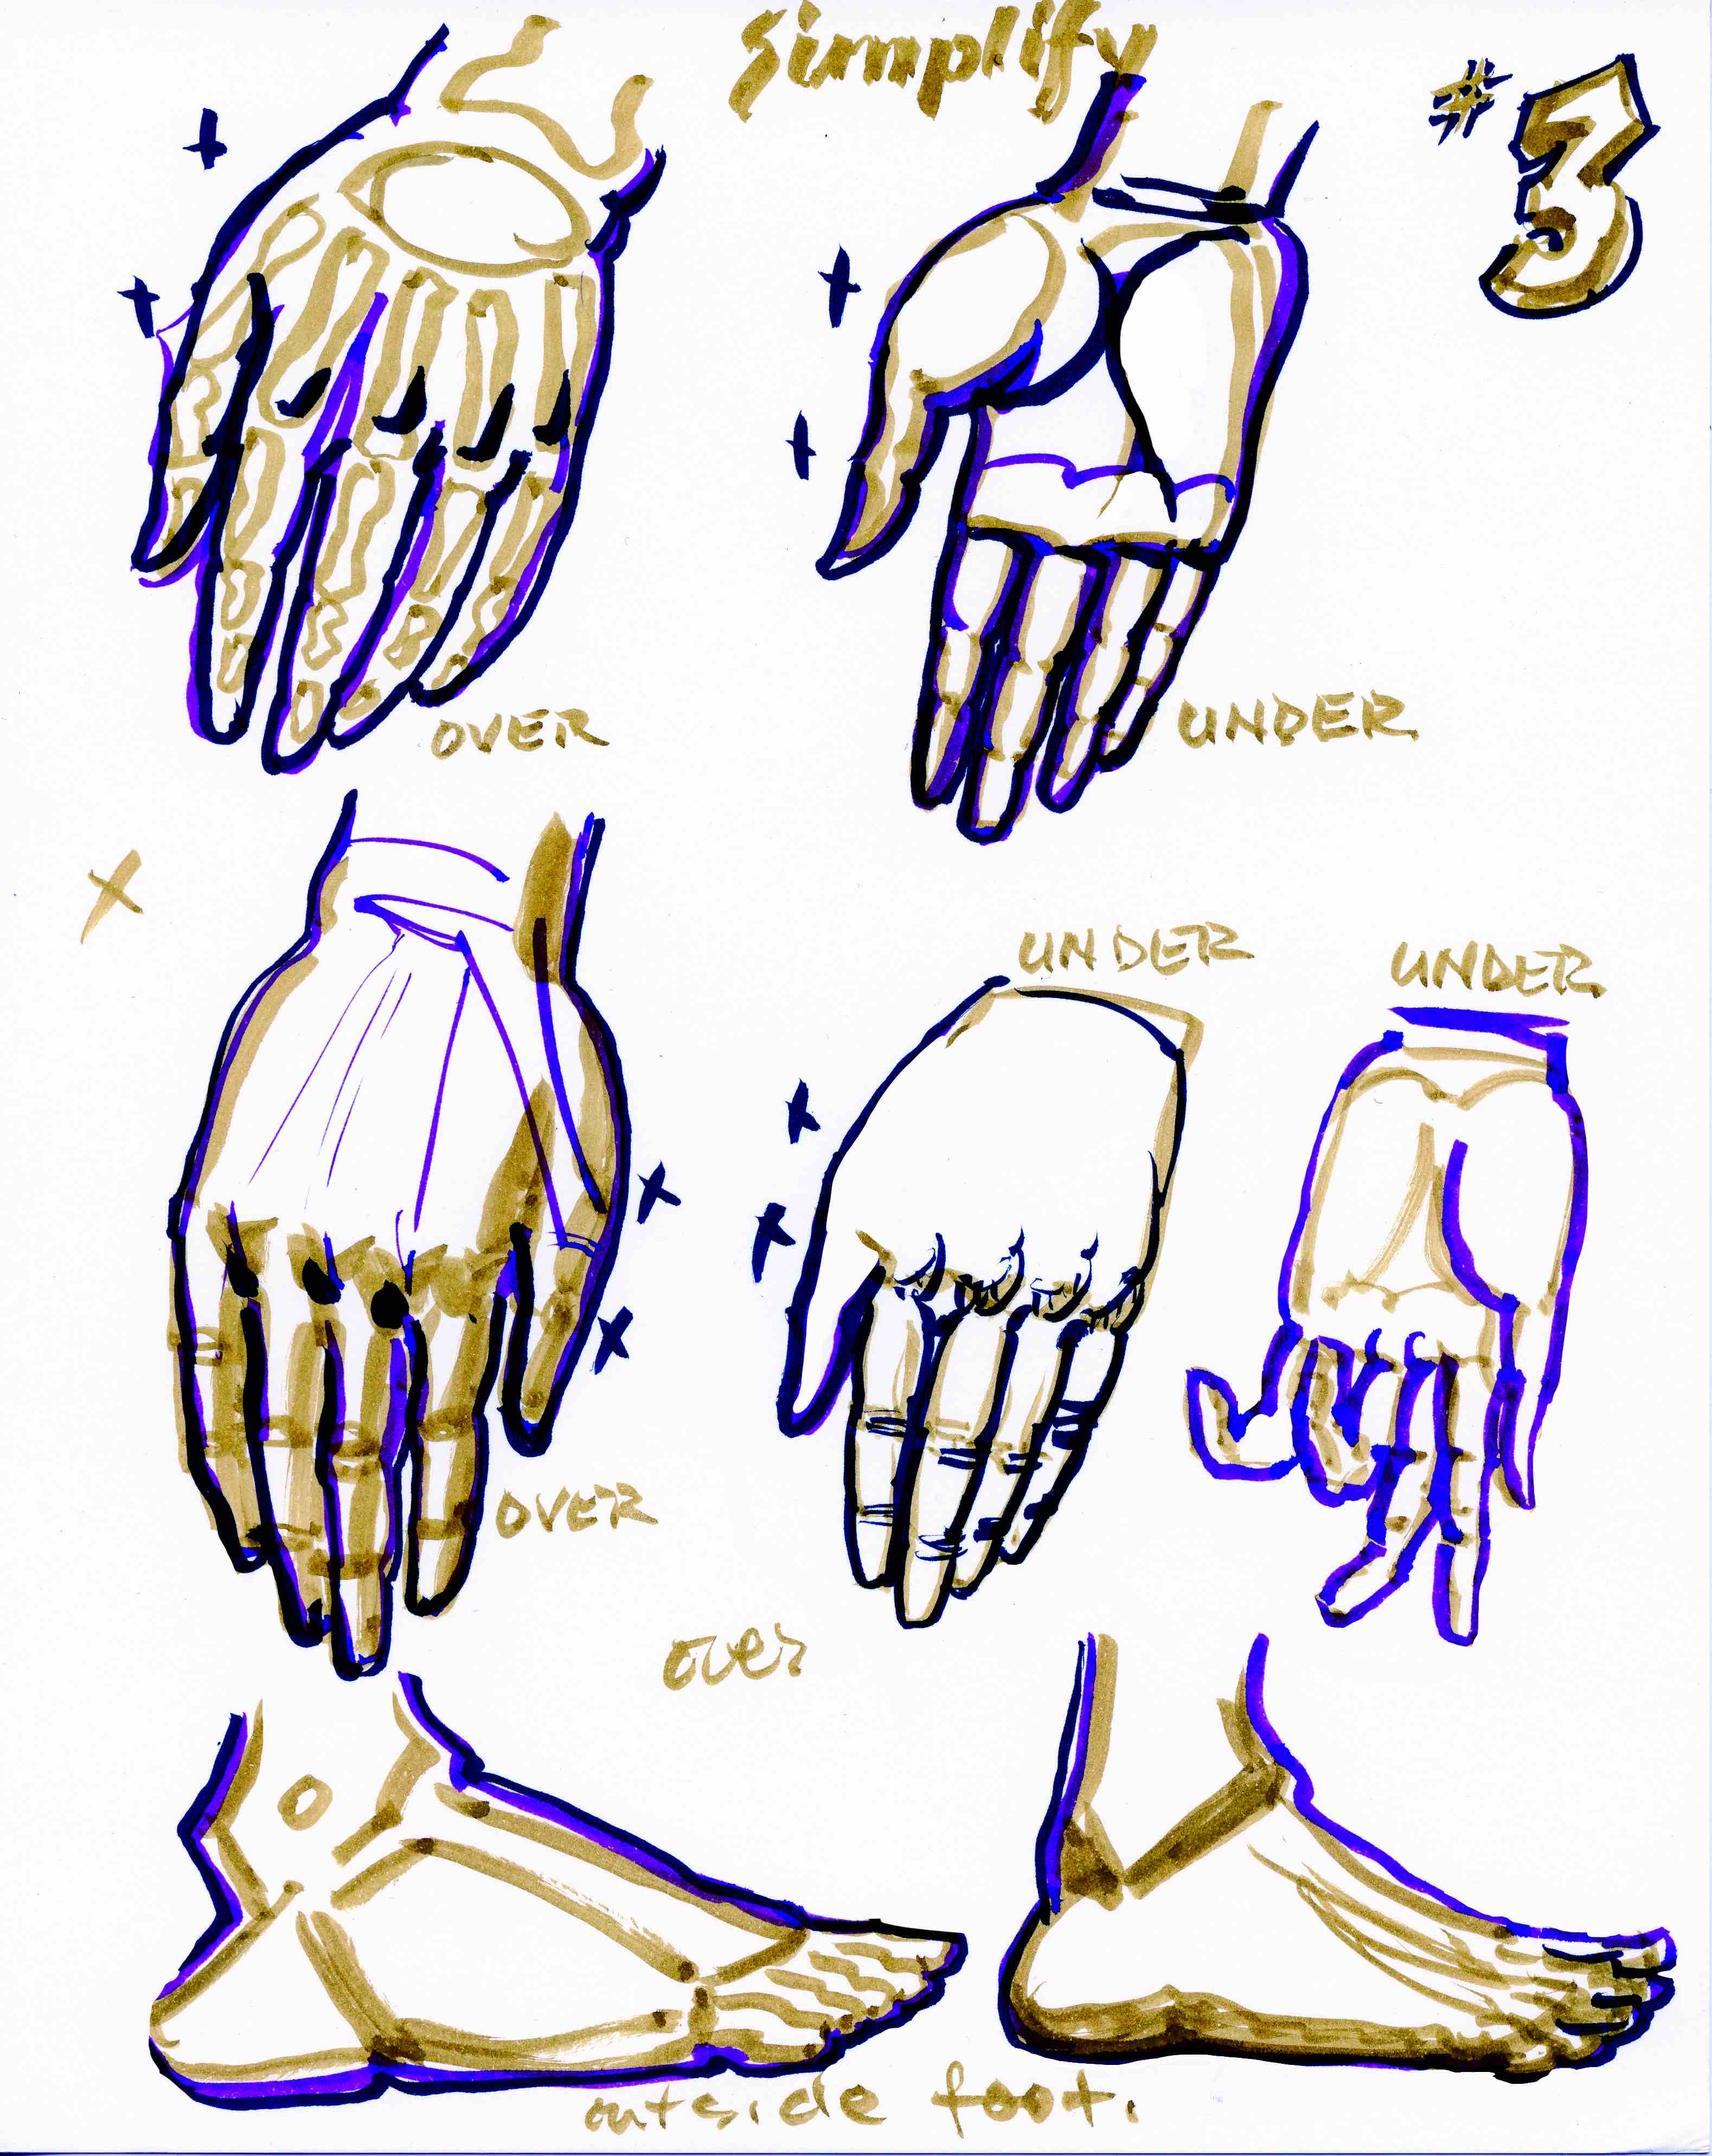 Key essentials of the hand simplified into graphic elements.